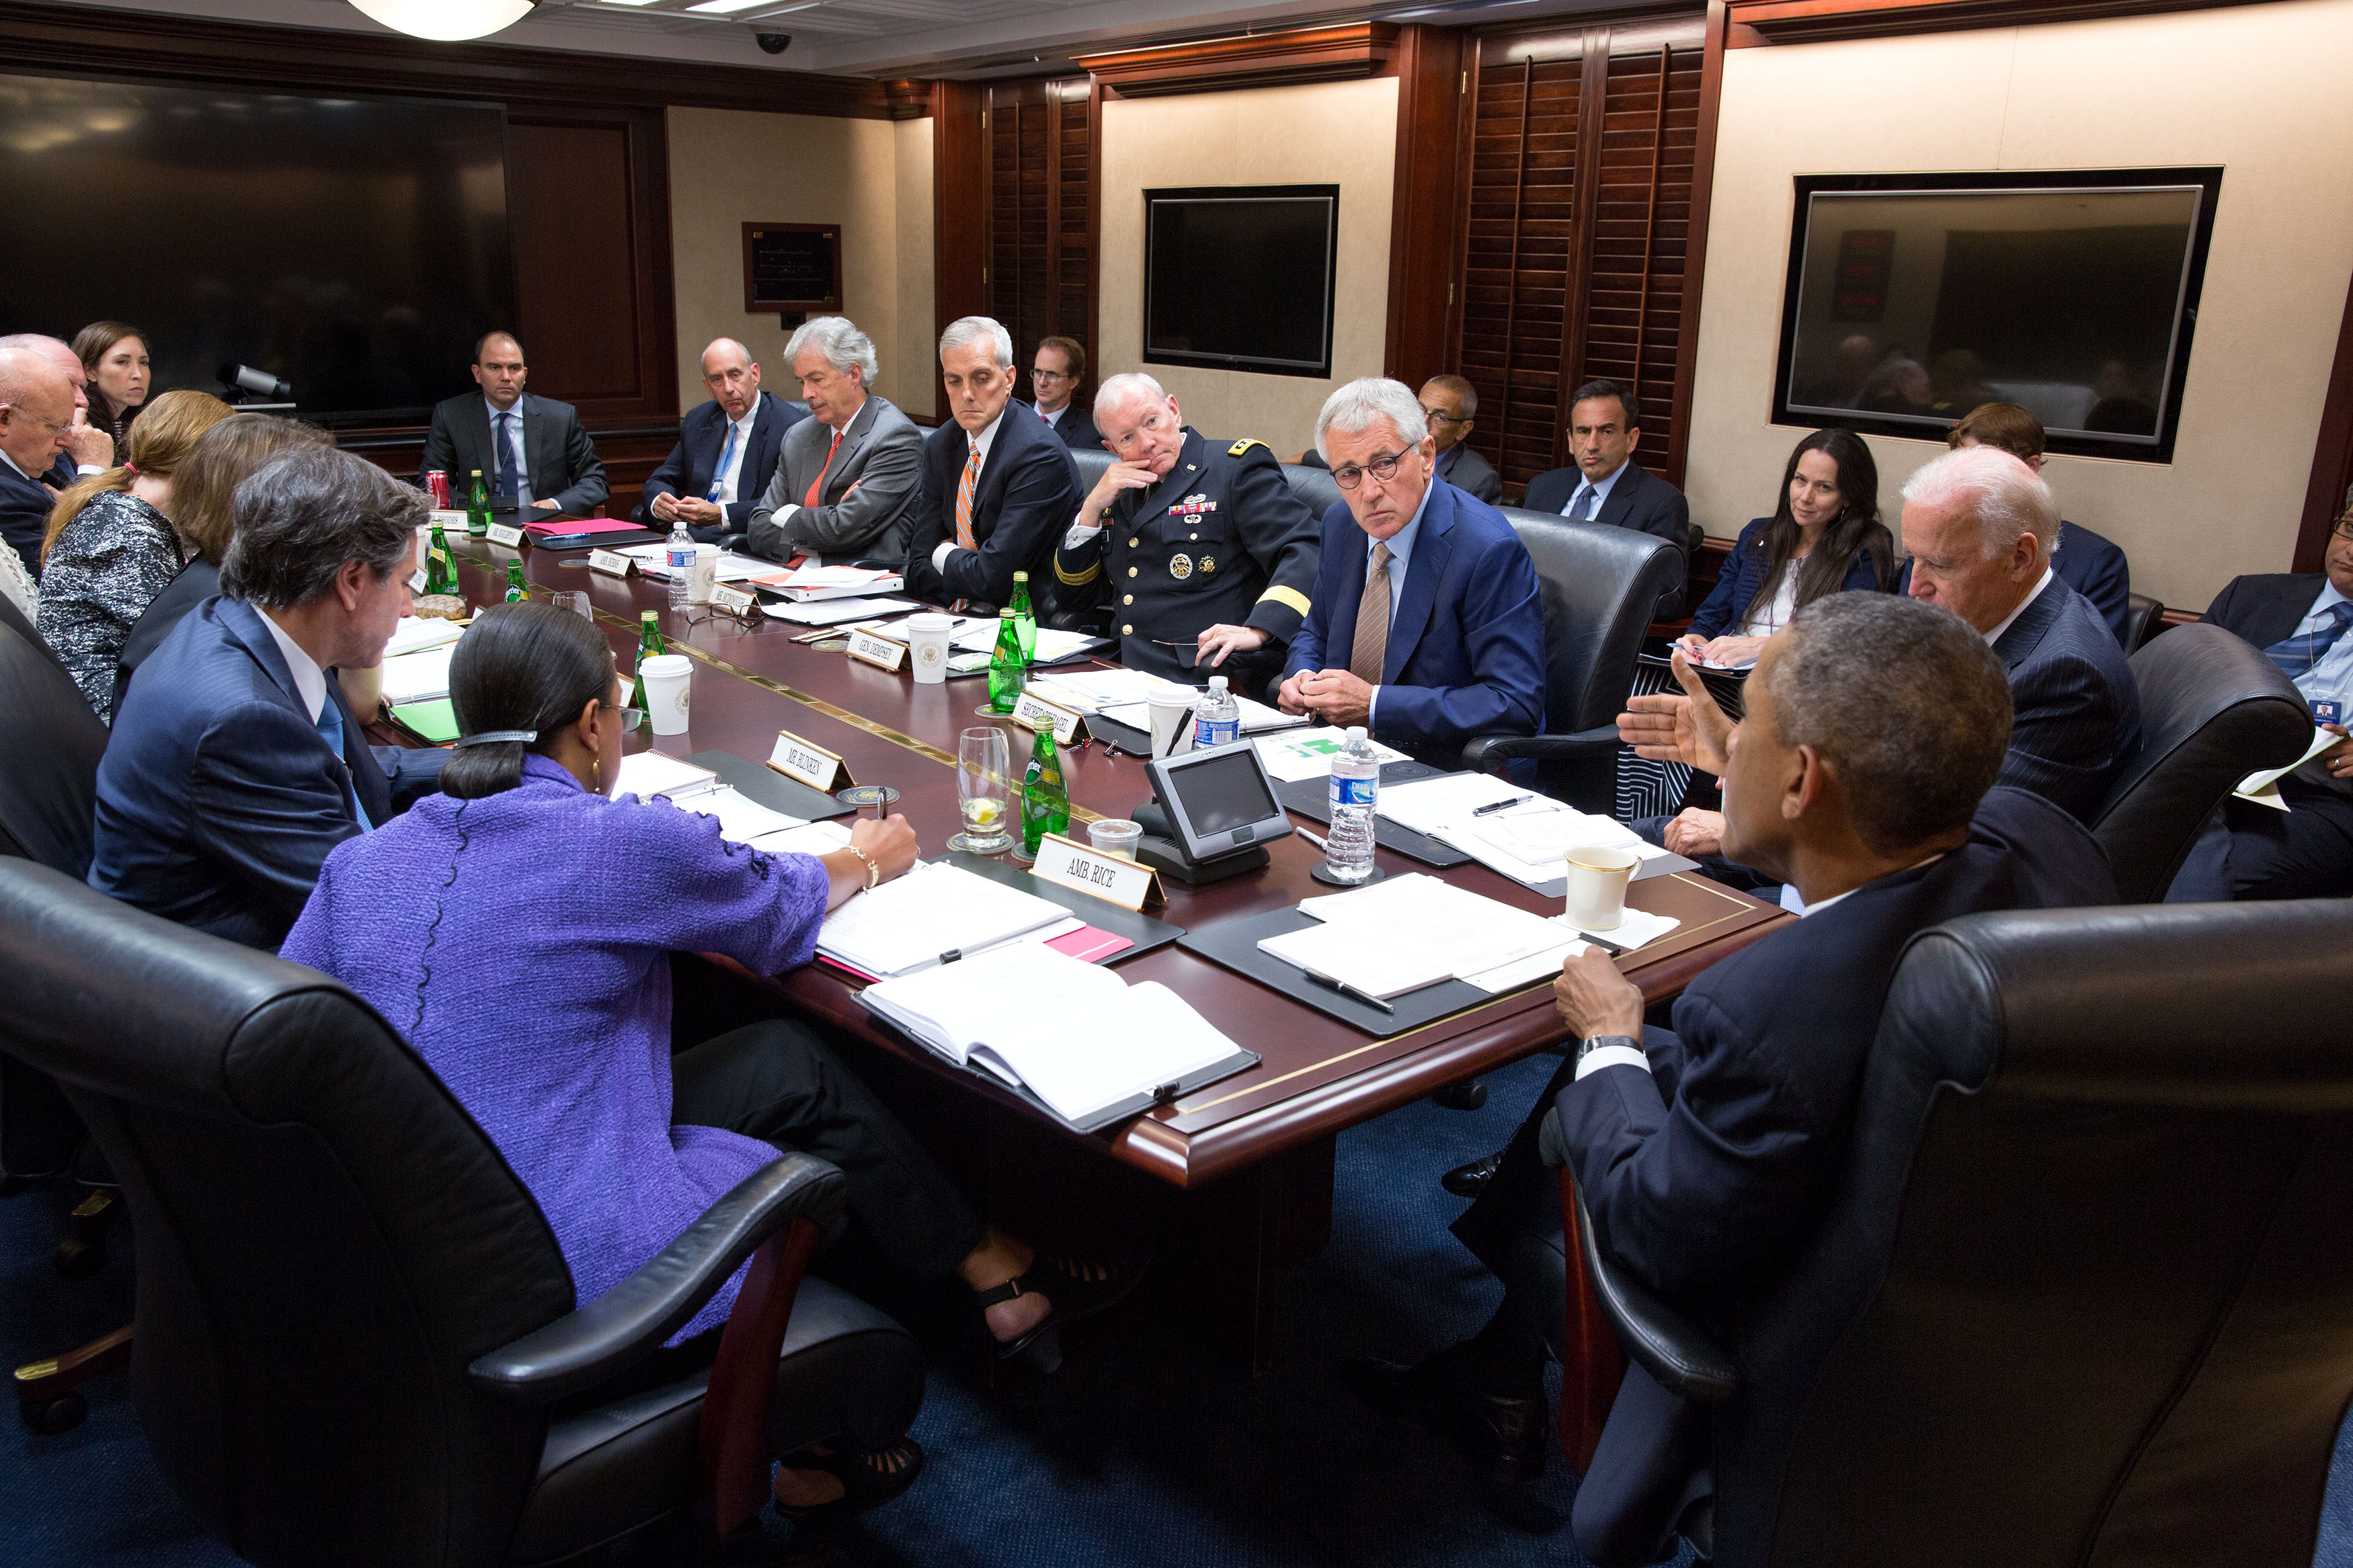 President Obama and Vice President Biden Meet with National Security Council to Discuss ISIL